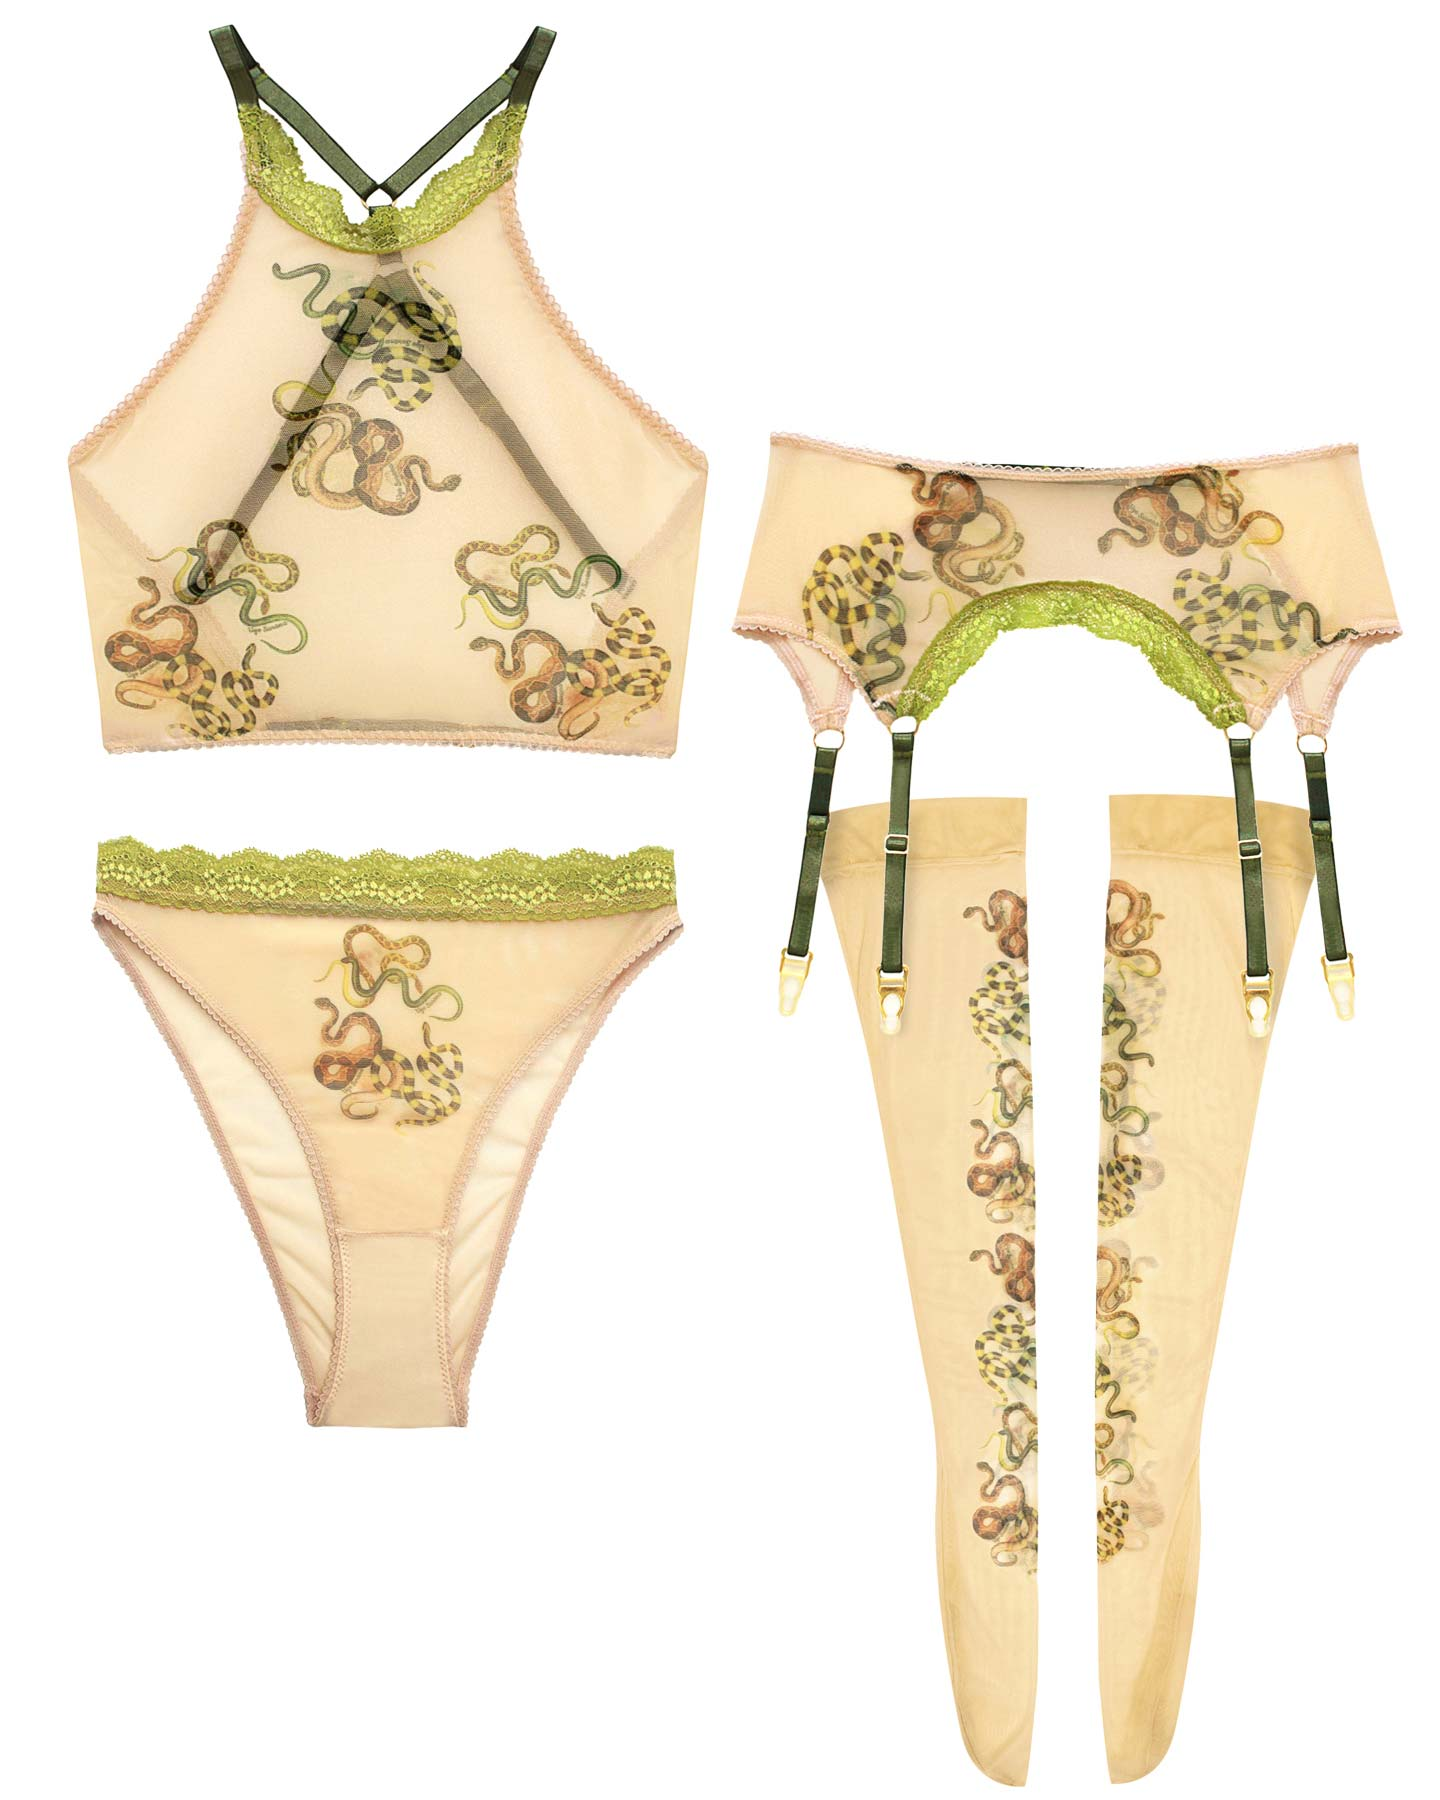 Snakes Printed High Waist Panty - 2X/3X left!